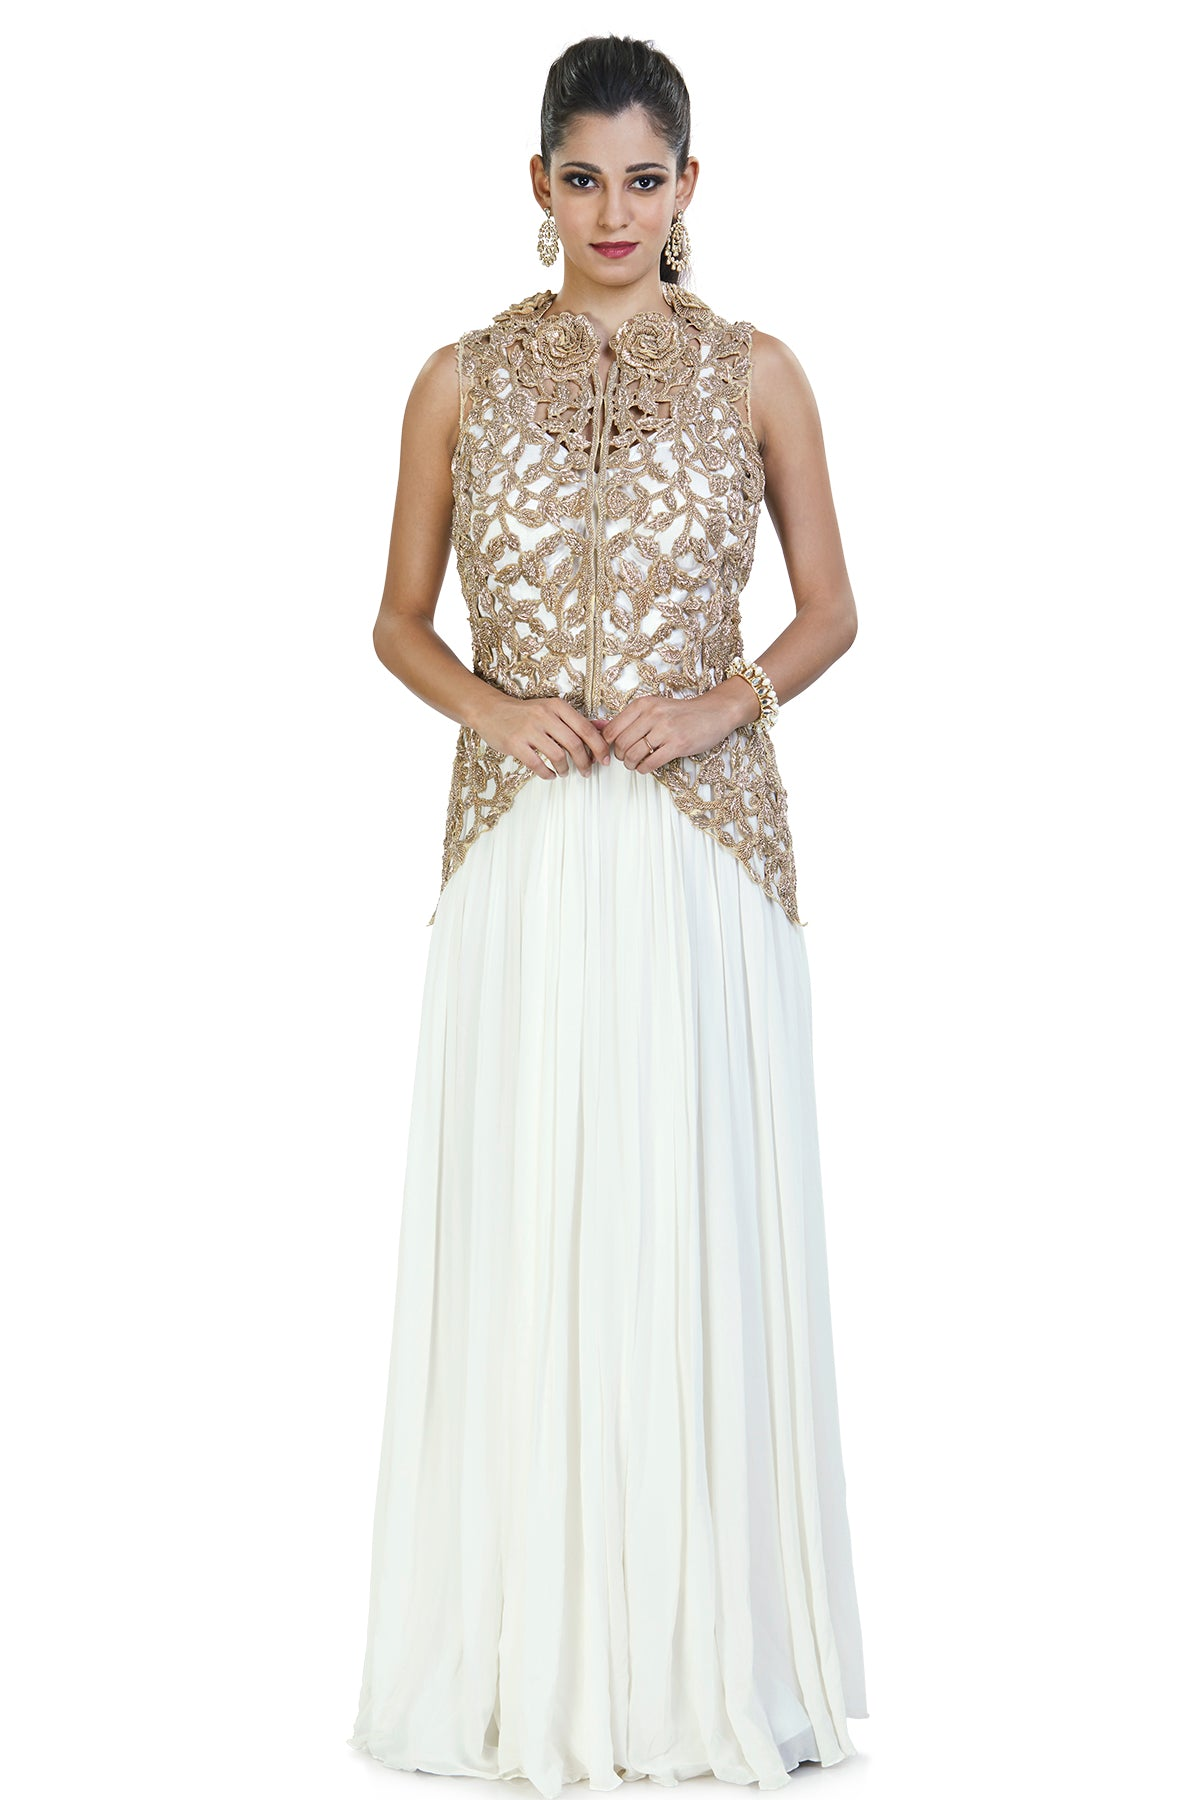 This enchanting white evening jumpsuit is perfect for your best friend's sangeet ceremony. It is enhanced with the golden cage work on its delicate jacket using cut-dana.